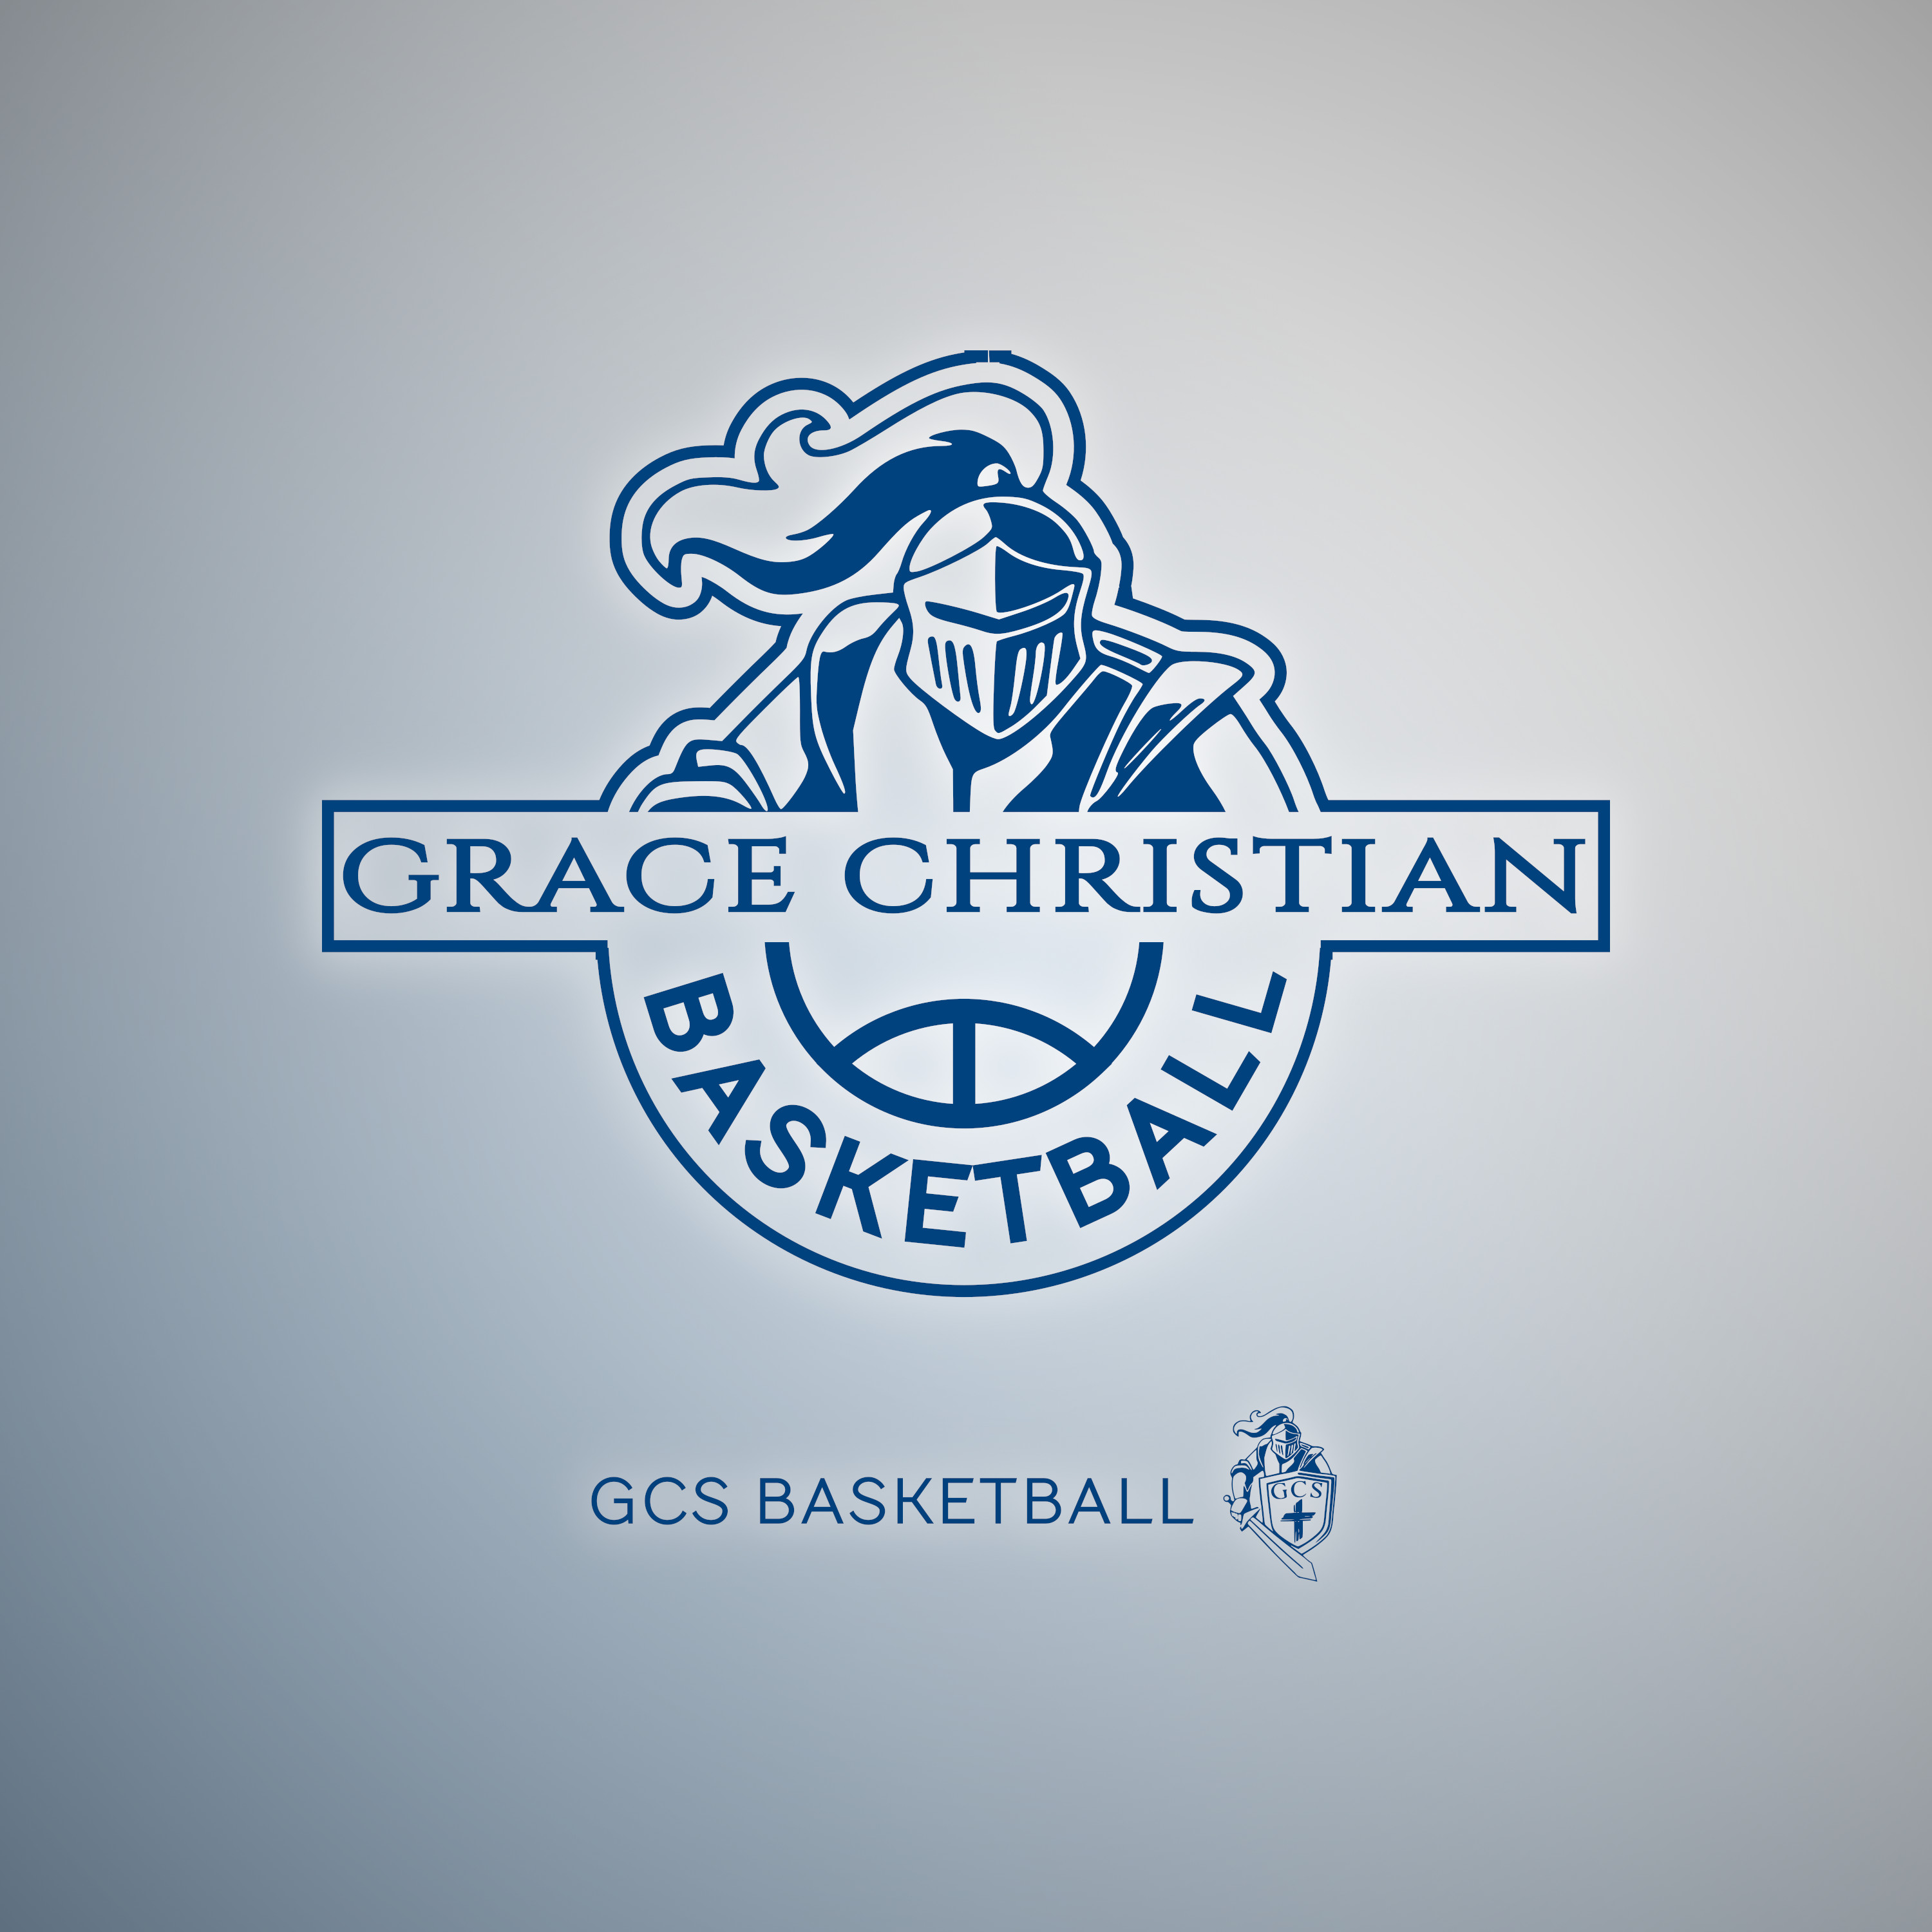 grace-christian-basketball-tshirt-design-servant-productions